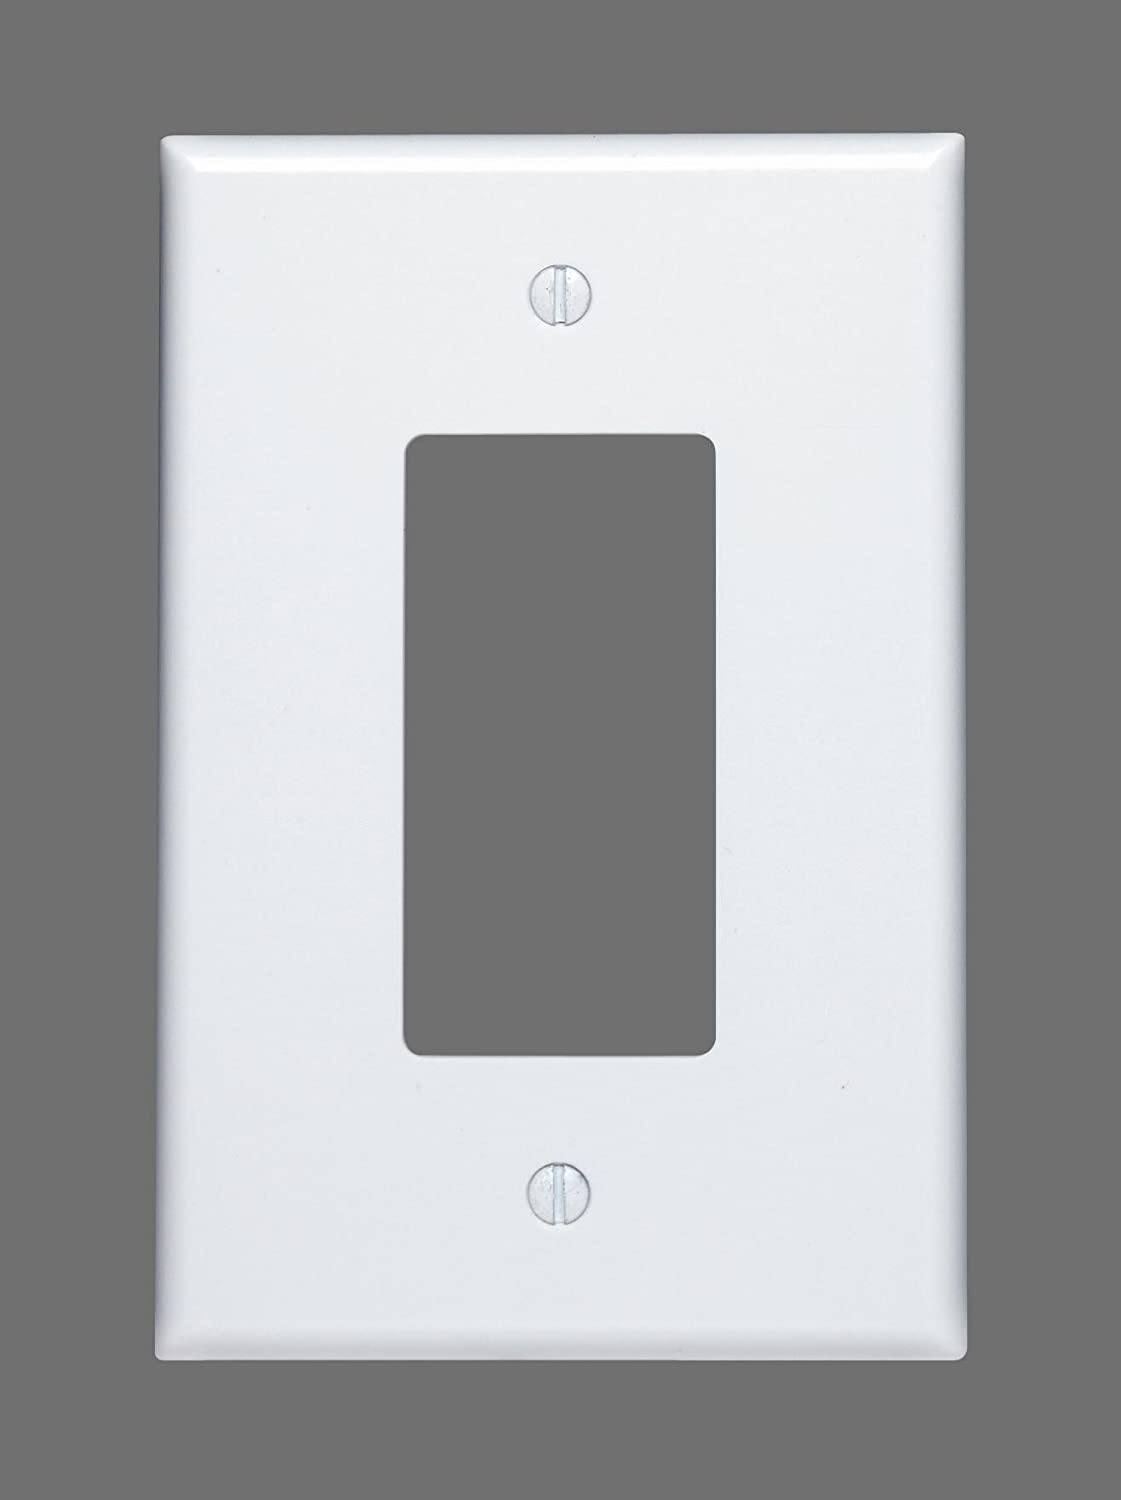 Leviton 88601 1-Gang Decora/GFCI Device, Wallplate, Oversized, Thermoset, Device Mount, White